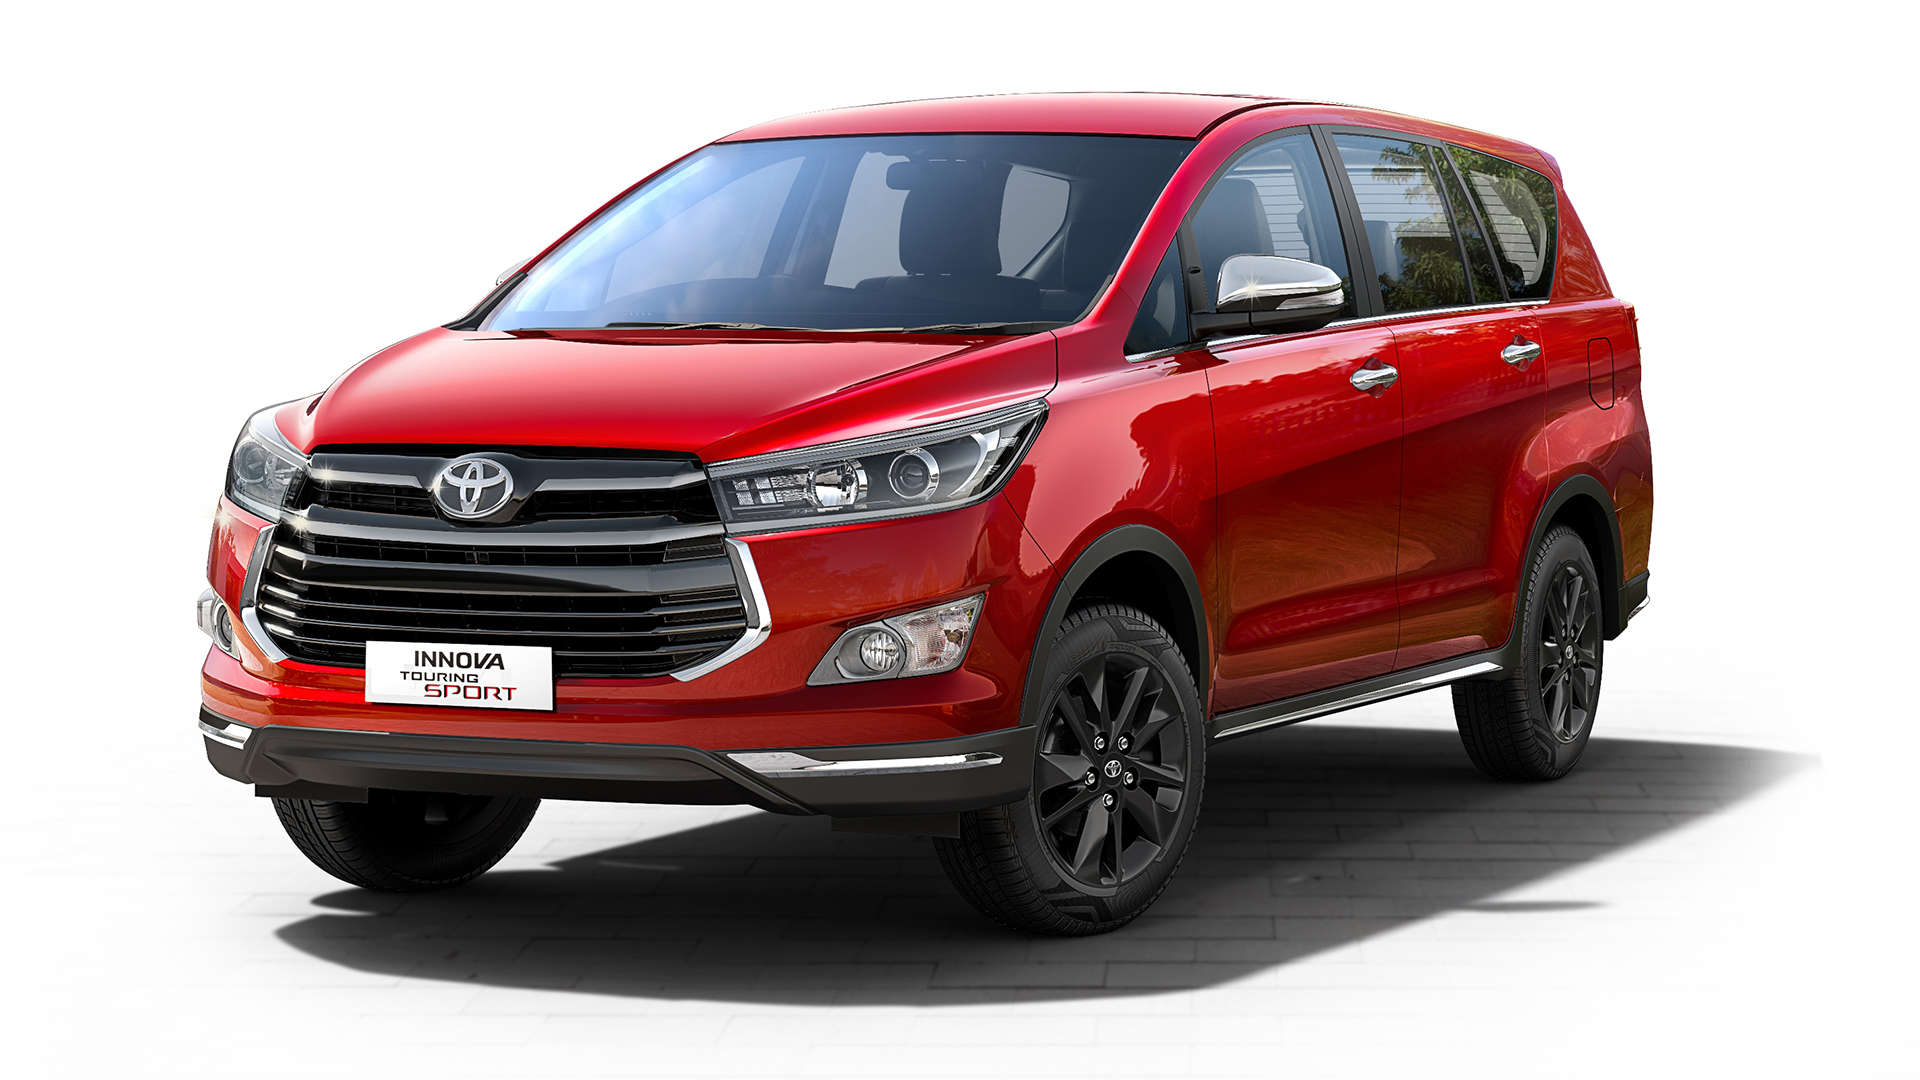 Toyota Fortuner Philippines Price List >> Nissan Suv Philippines Price List | 2018, 2019, 2020 Ford Cars